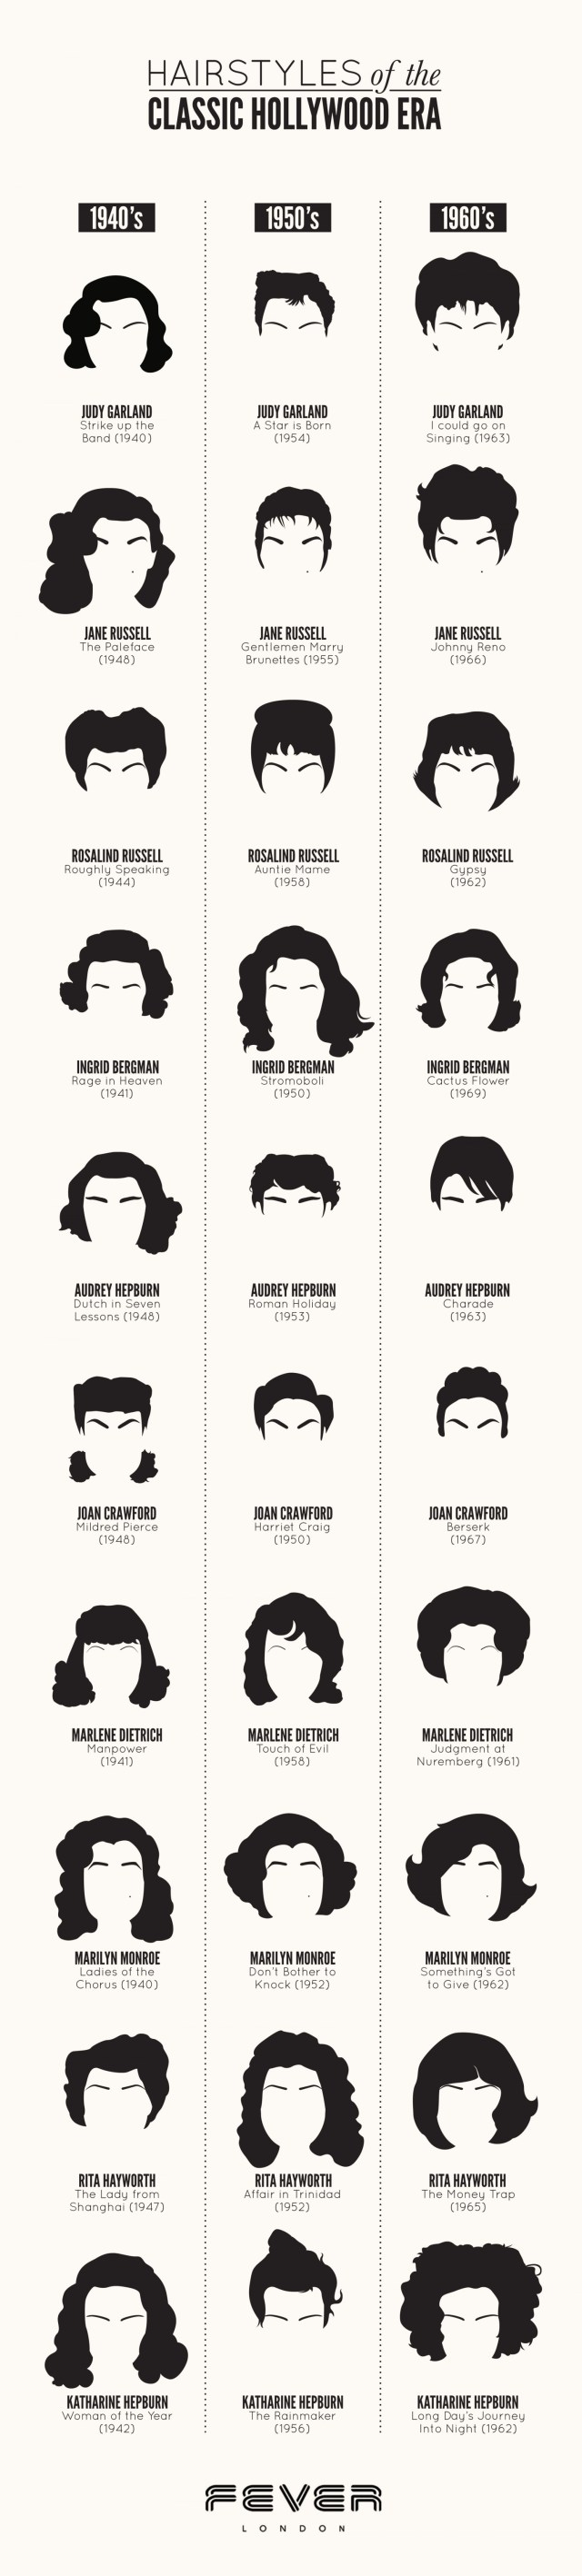 hairstyles of the classic hollywood era | visual.ly